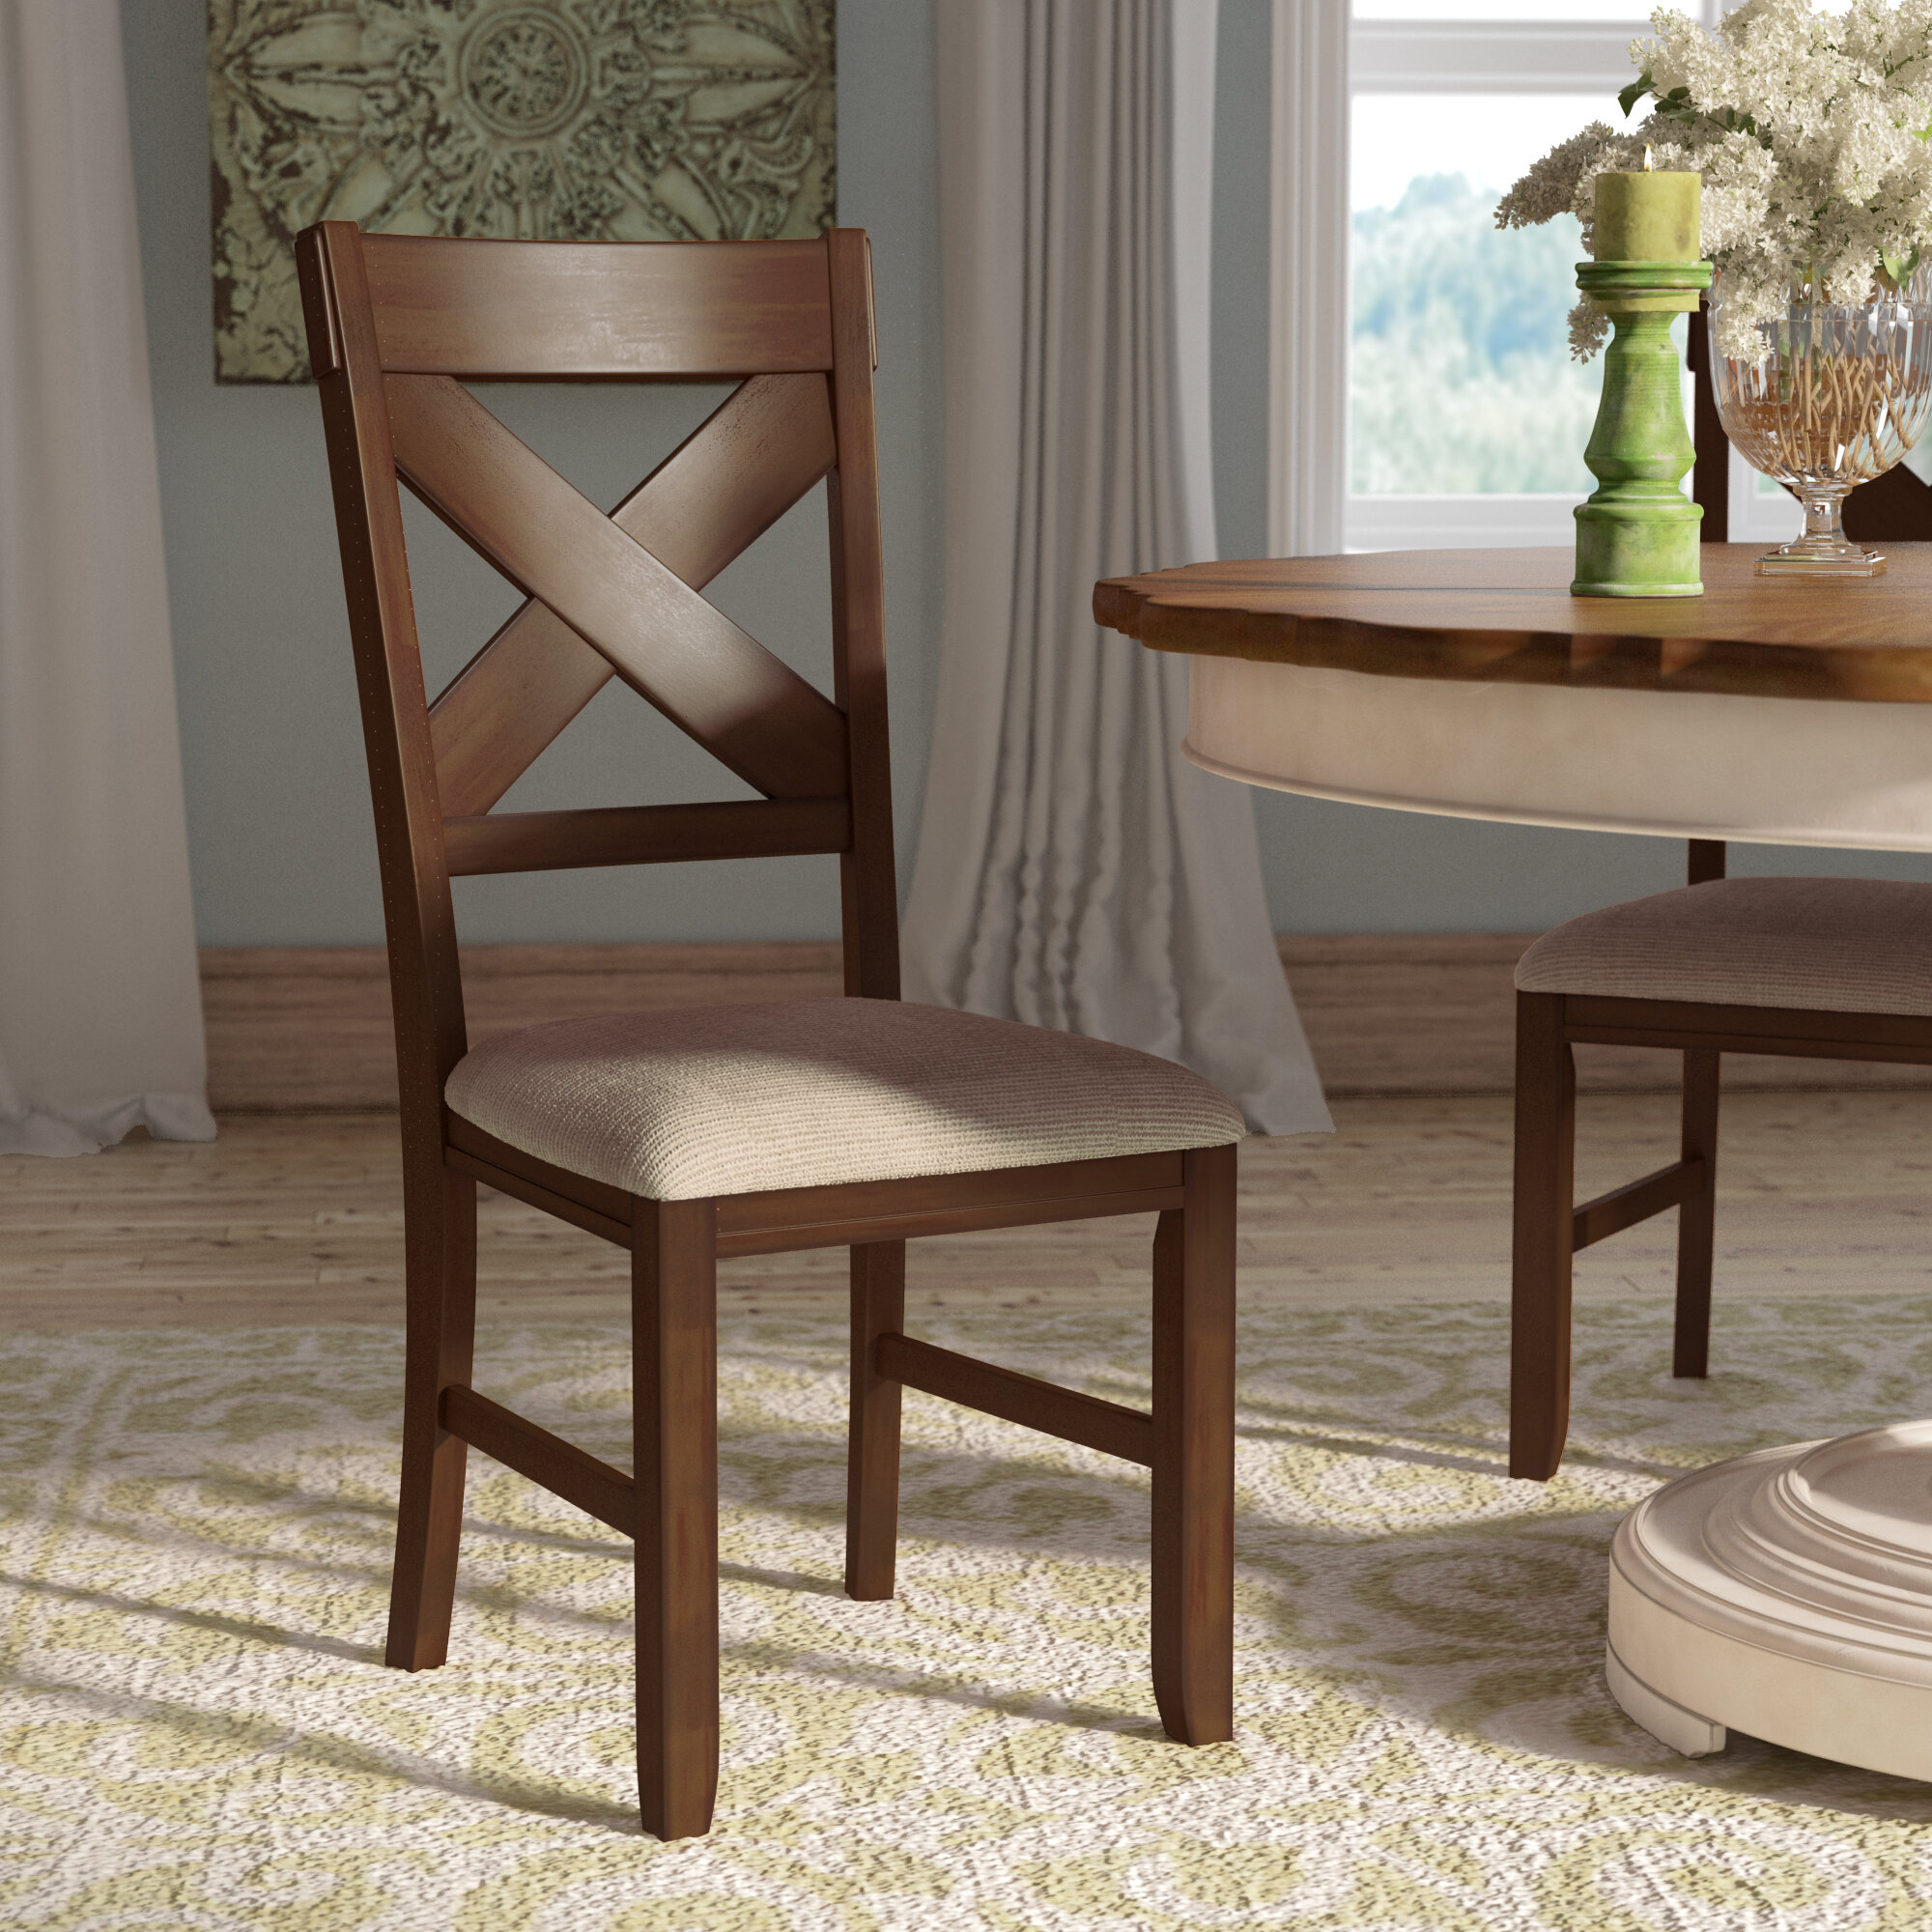 Image of: Laurel Foundry Modern Farmhouse Isabell Upholstered Dining Chair Reviews Wayfair Ca